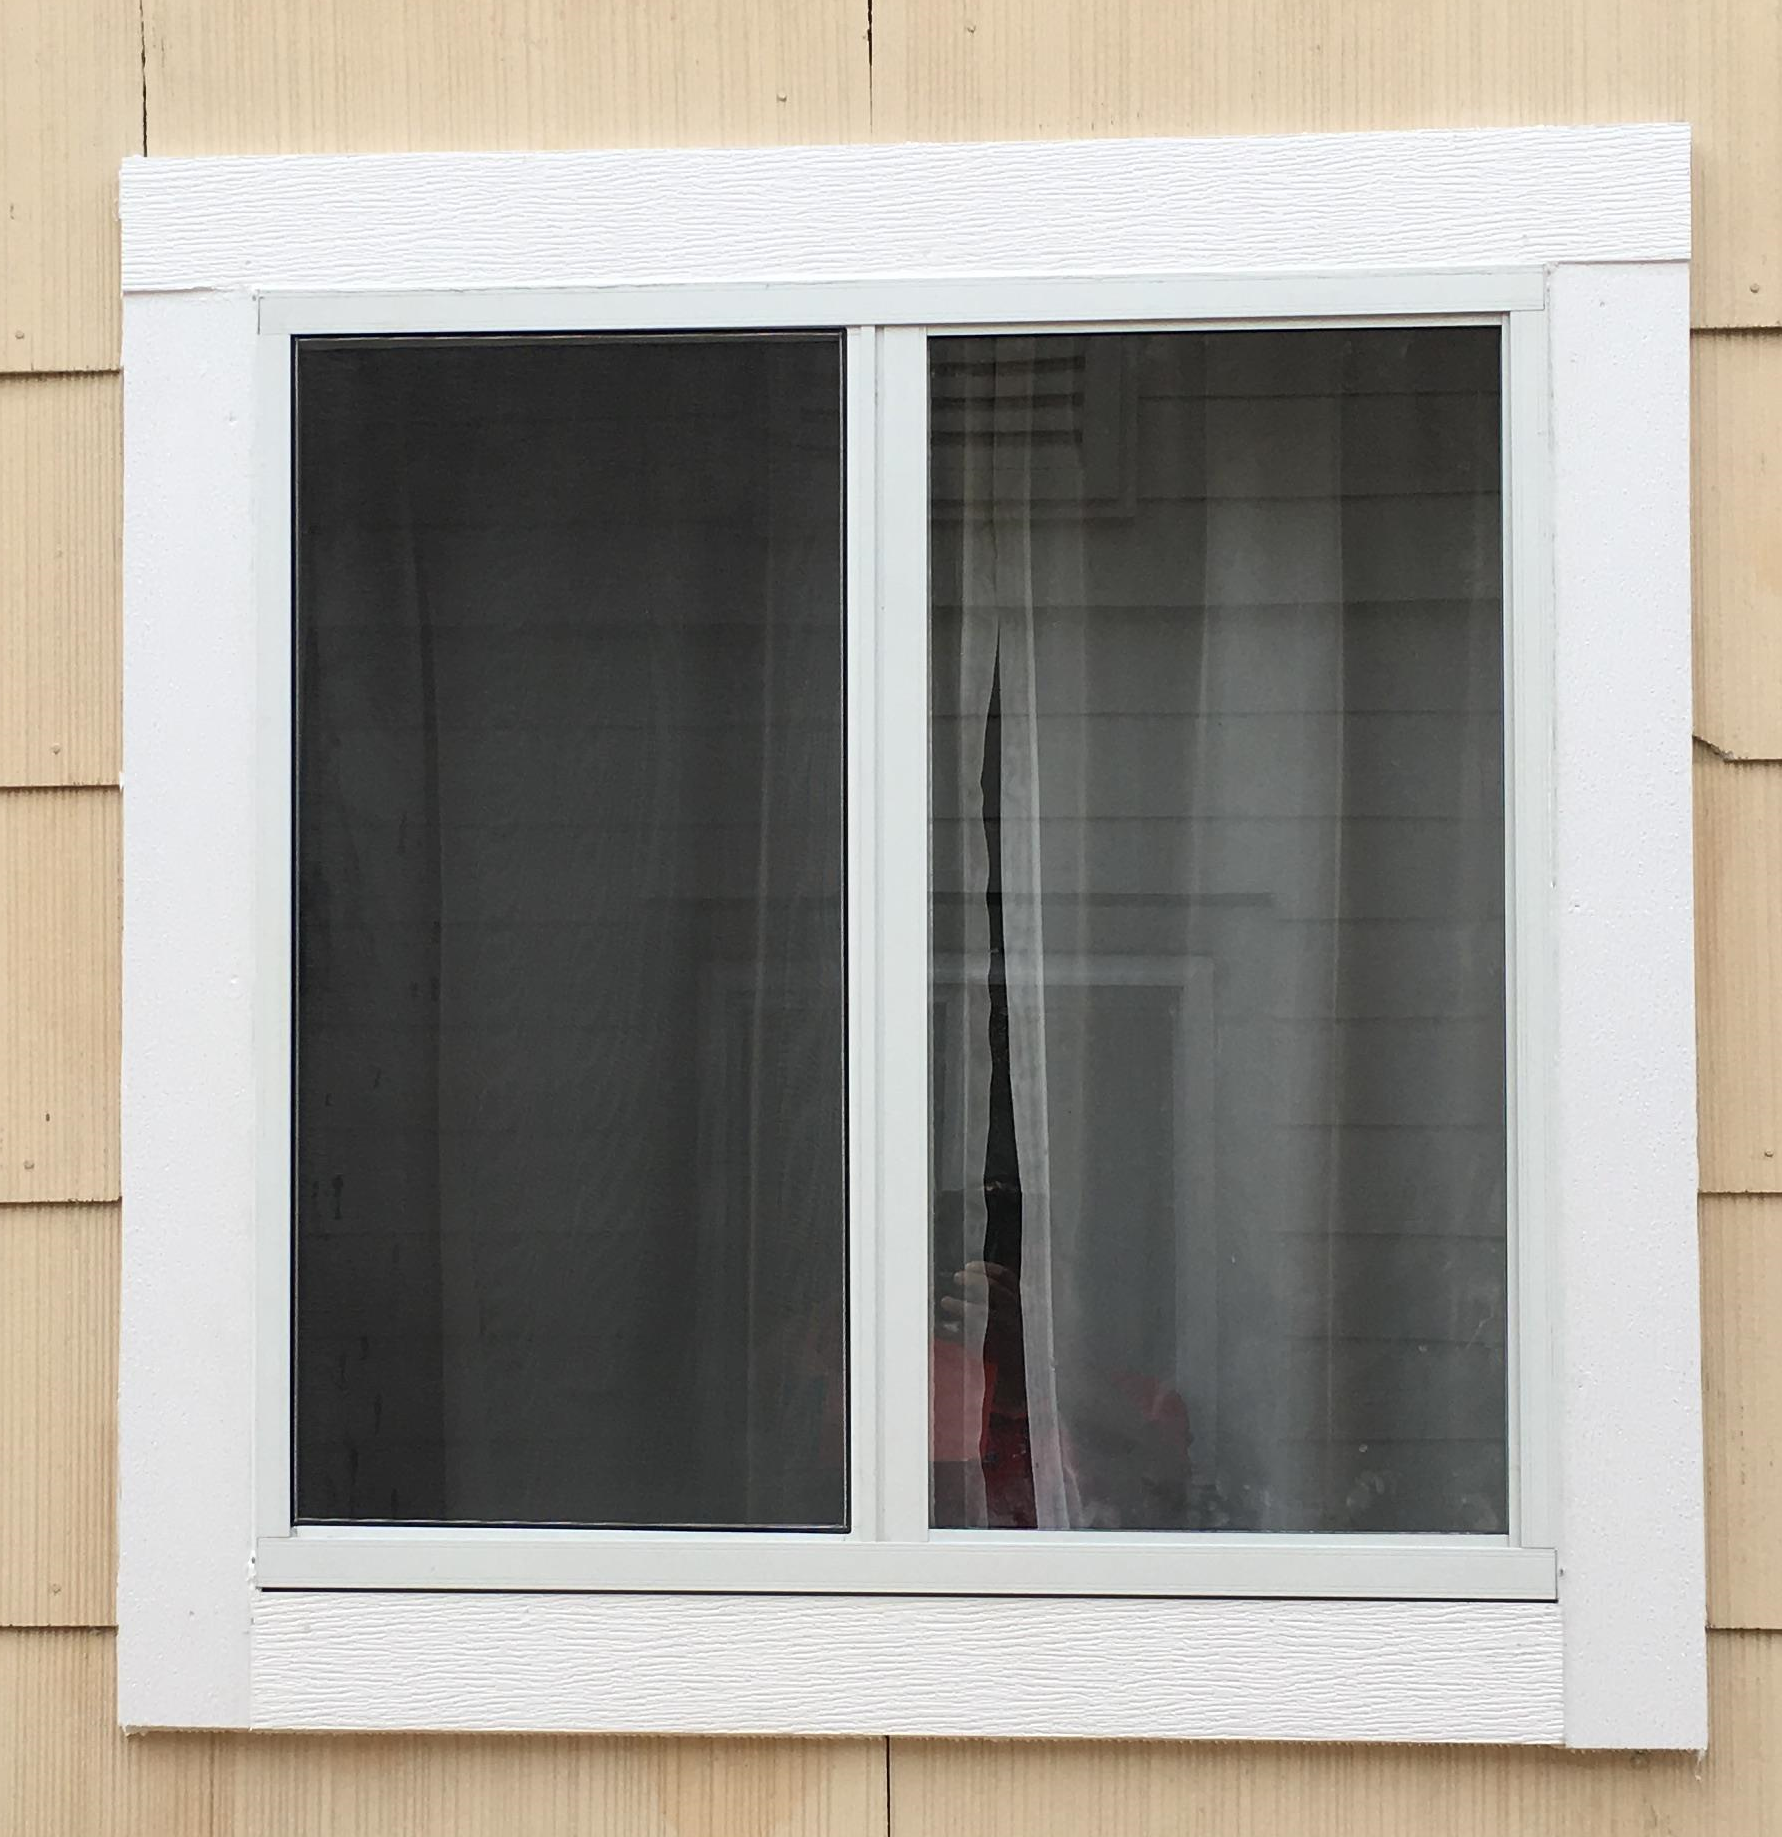 New window after installation